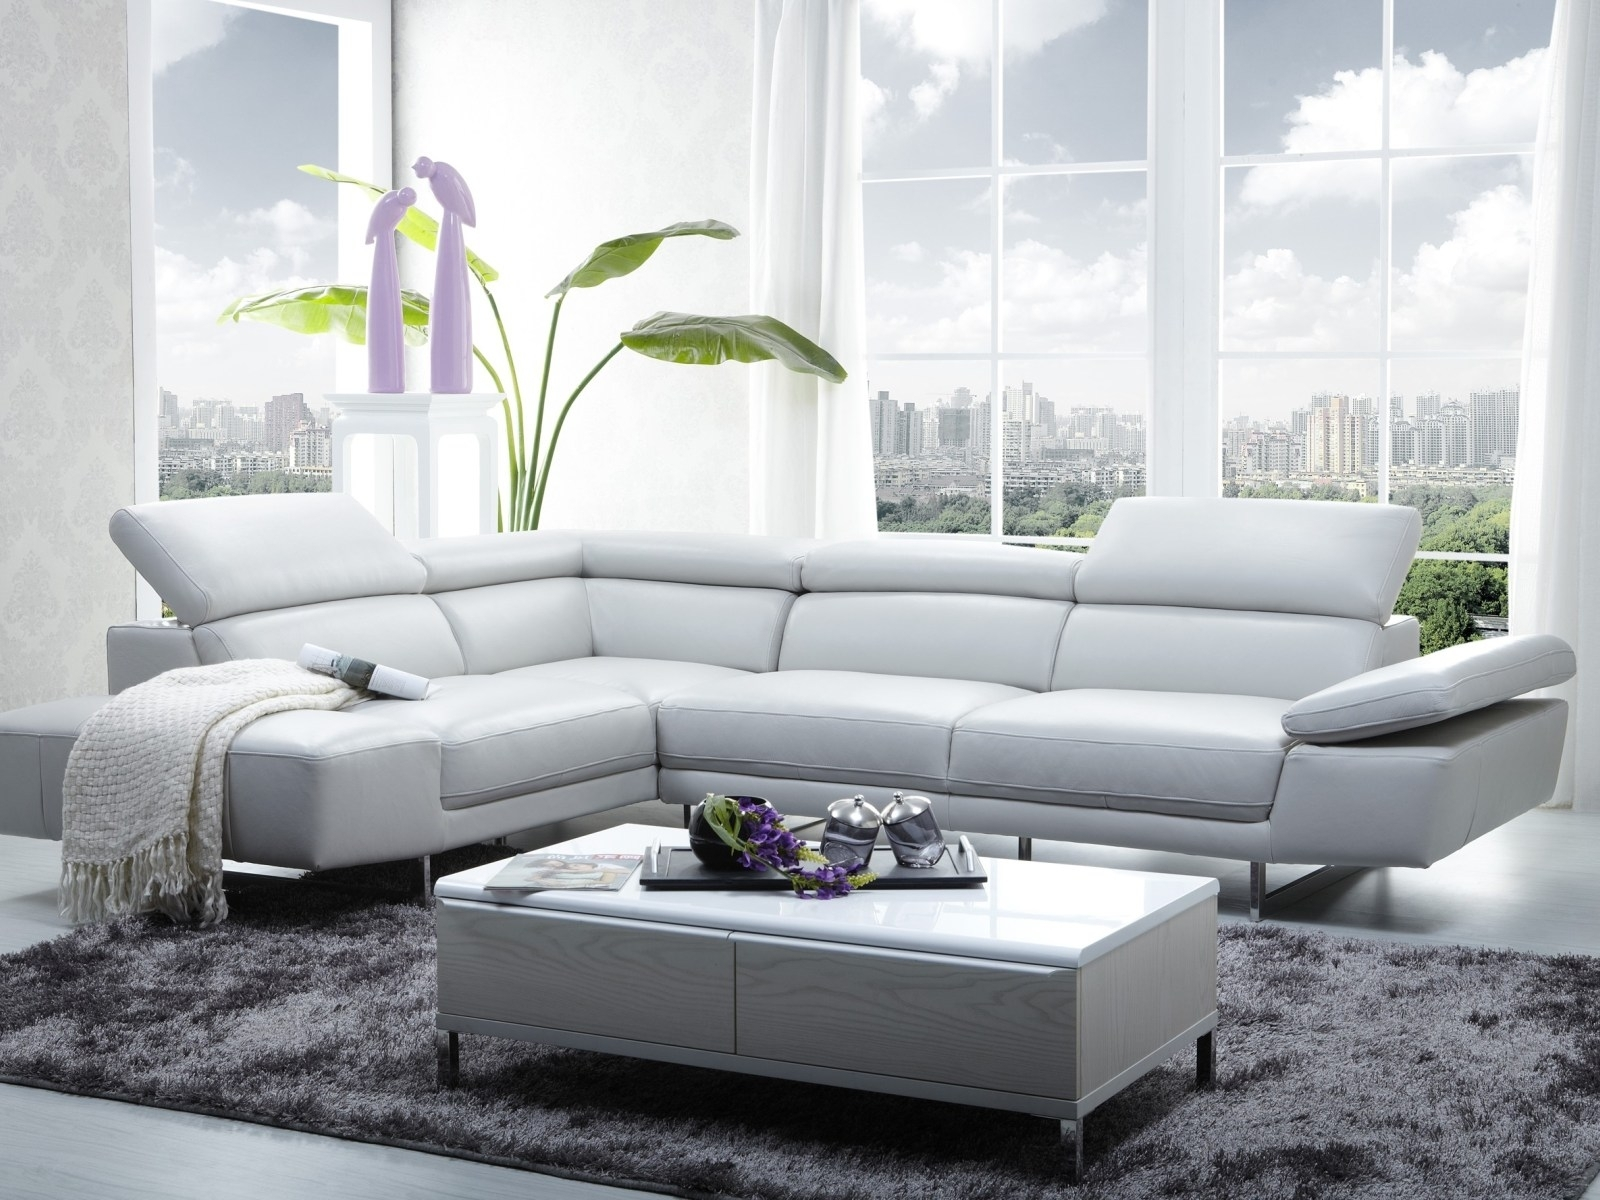 ▻ Sofa : 15 3058702 Poster P 1 A Modular Sofa That Can Rearrange Throughout Sectional Sofas That Can Be Rearranged (View 7 of 10)